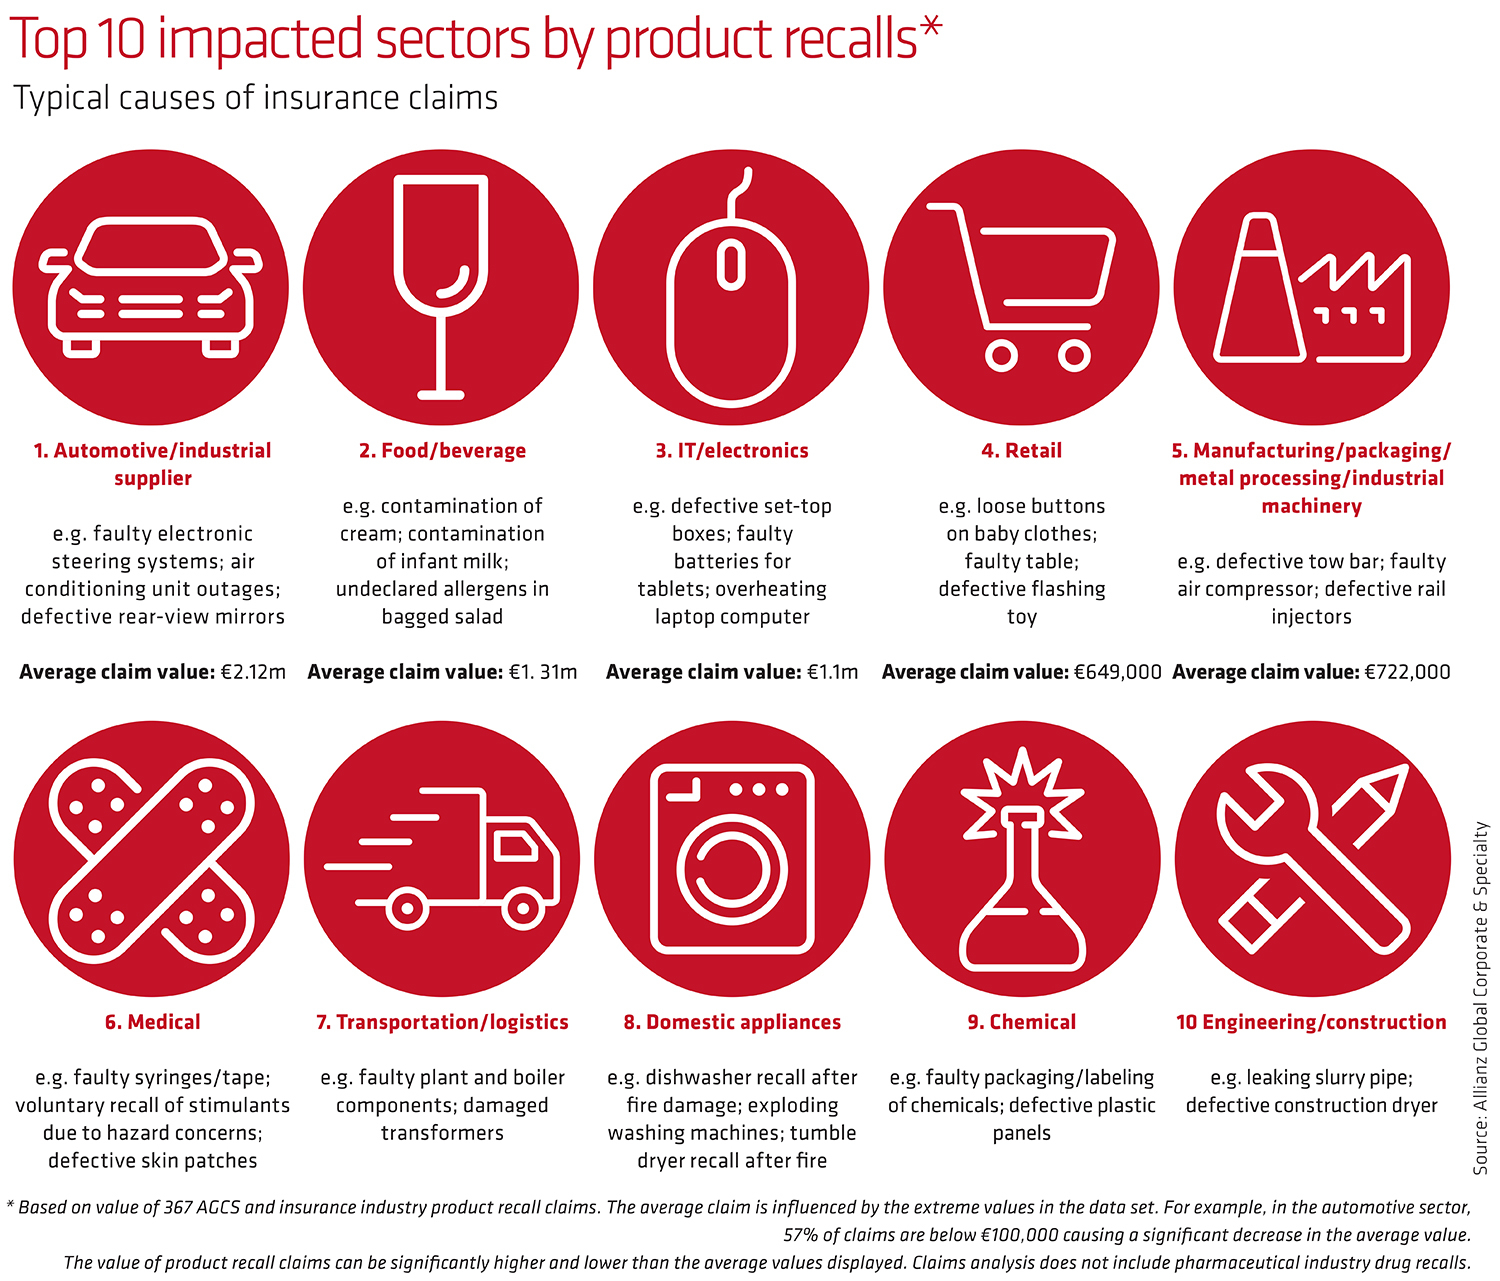 Top 10 impacted sectors by product recalls